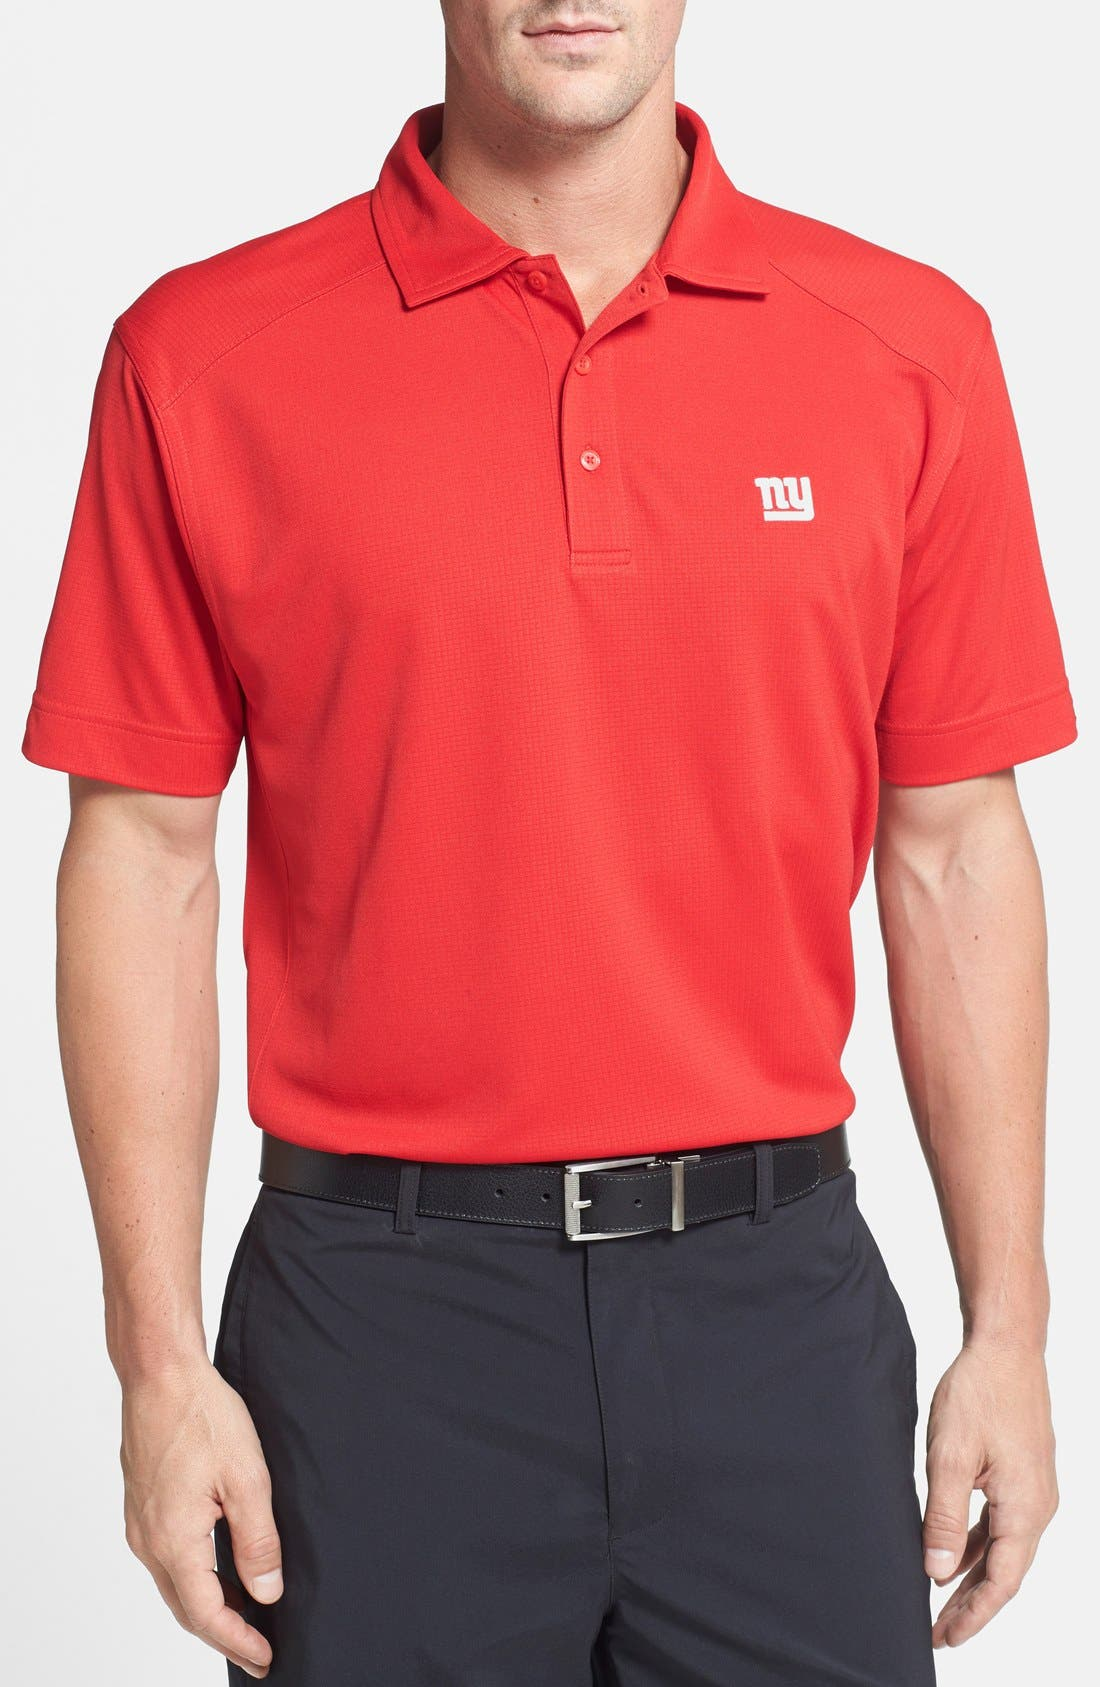 Cutter & Buck 'New York Giants - Genre' DryTec Moisture Wicking Polo (Big & Tall)